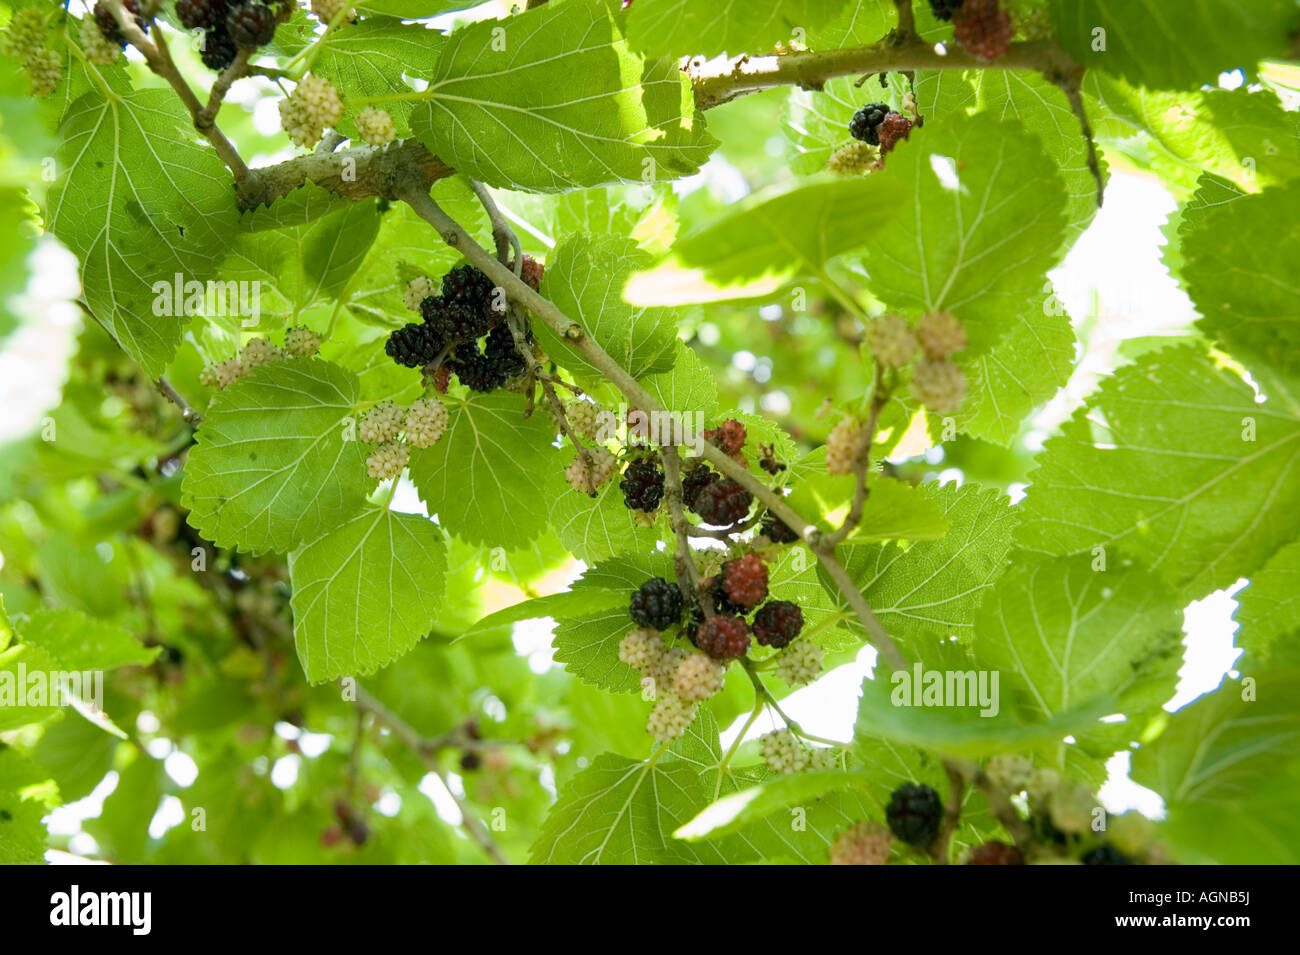 israel morus nigra black mulberry tree and fruit in a garden, Beautiful flower